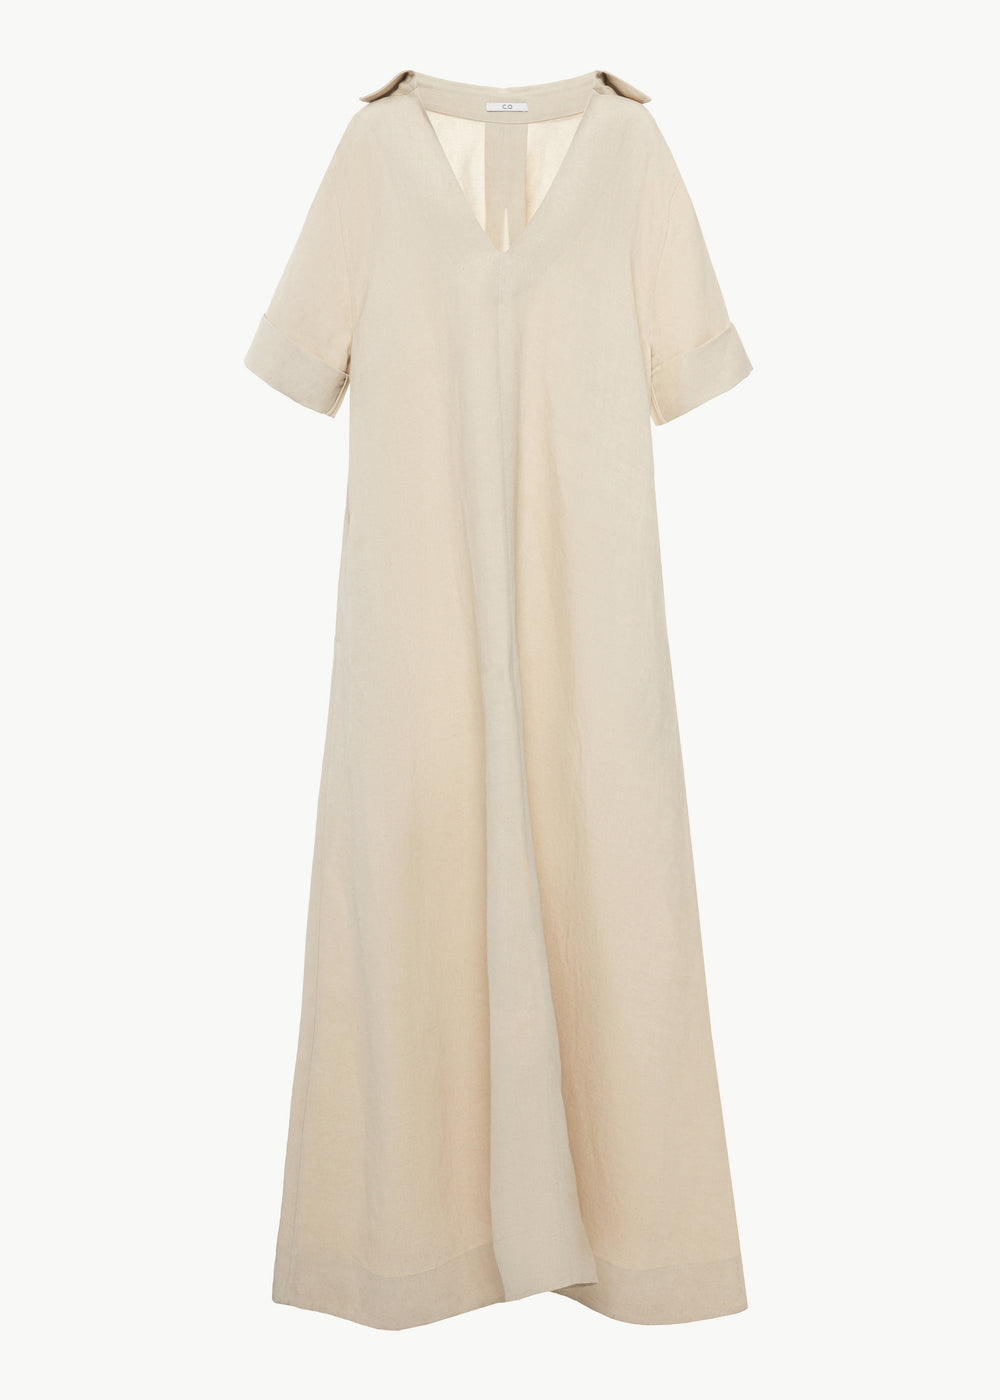 Oversized Shirt Dress in Linen - Taupe - CO